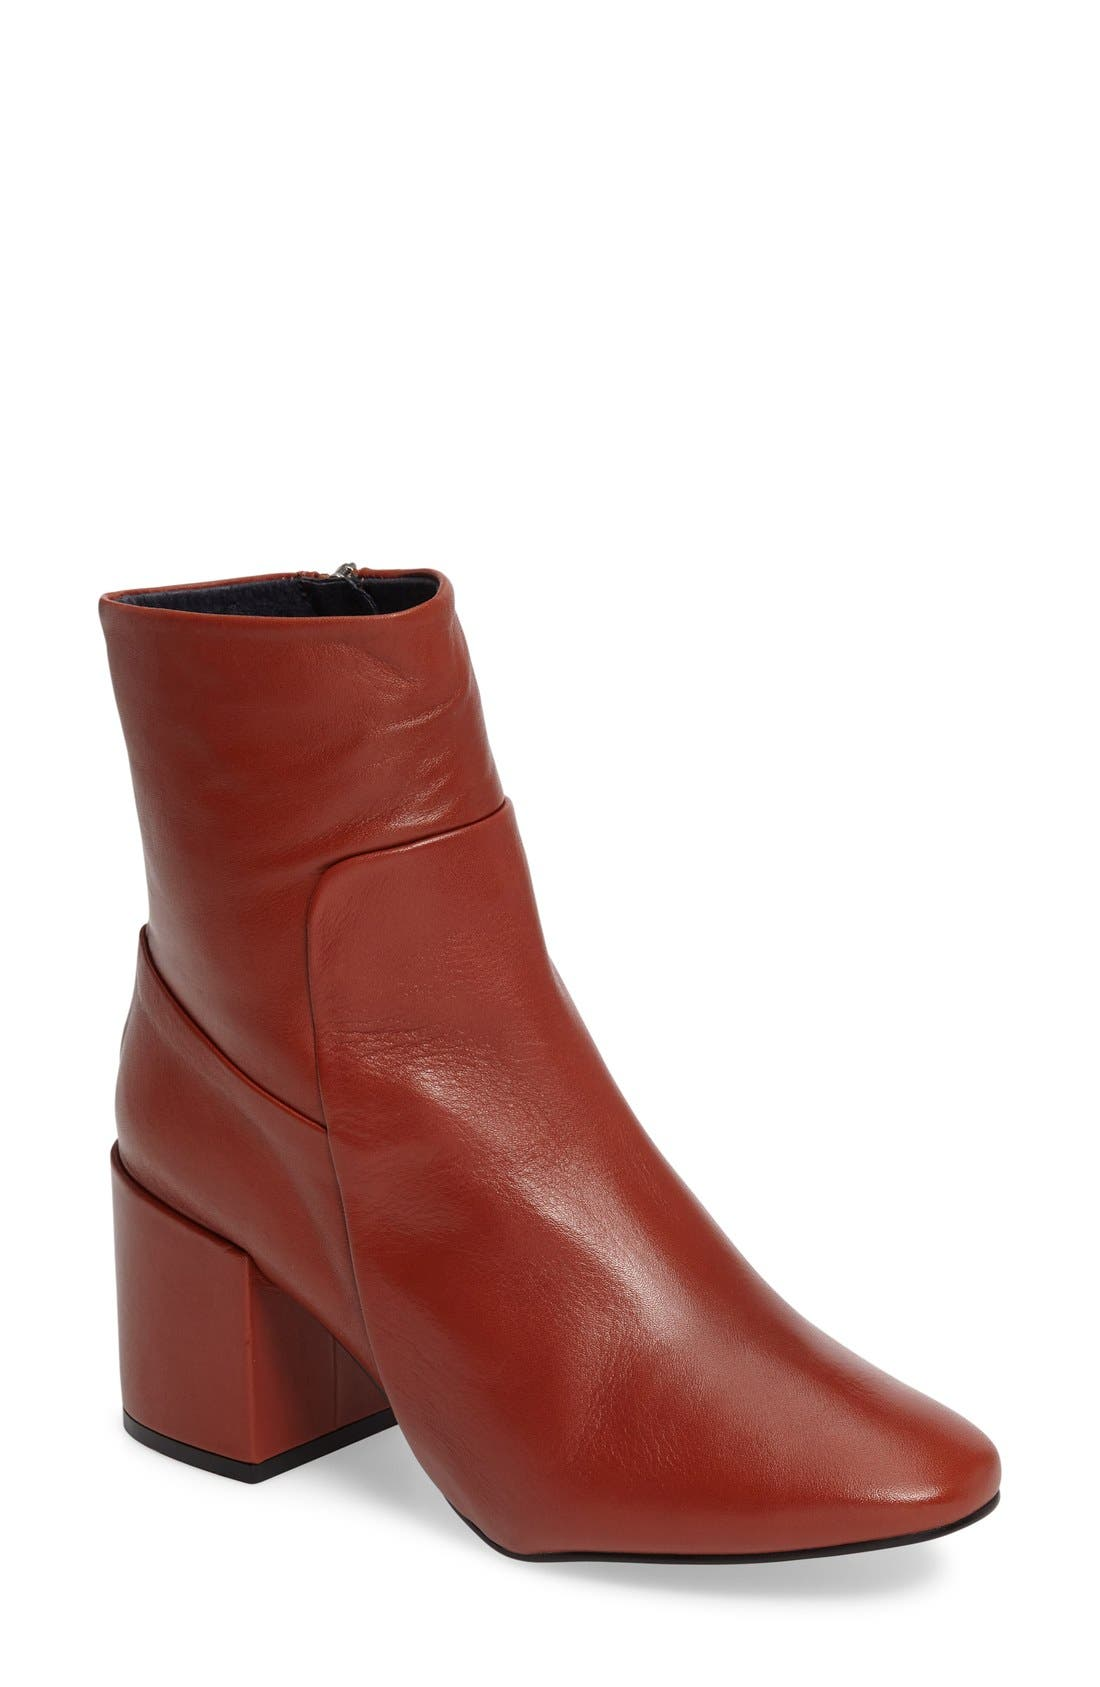 Main Image - Topshop Mint Pointy Toe Bootie (Women)